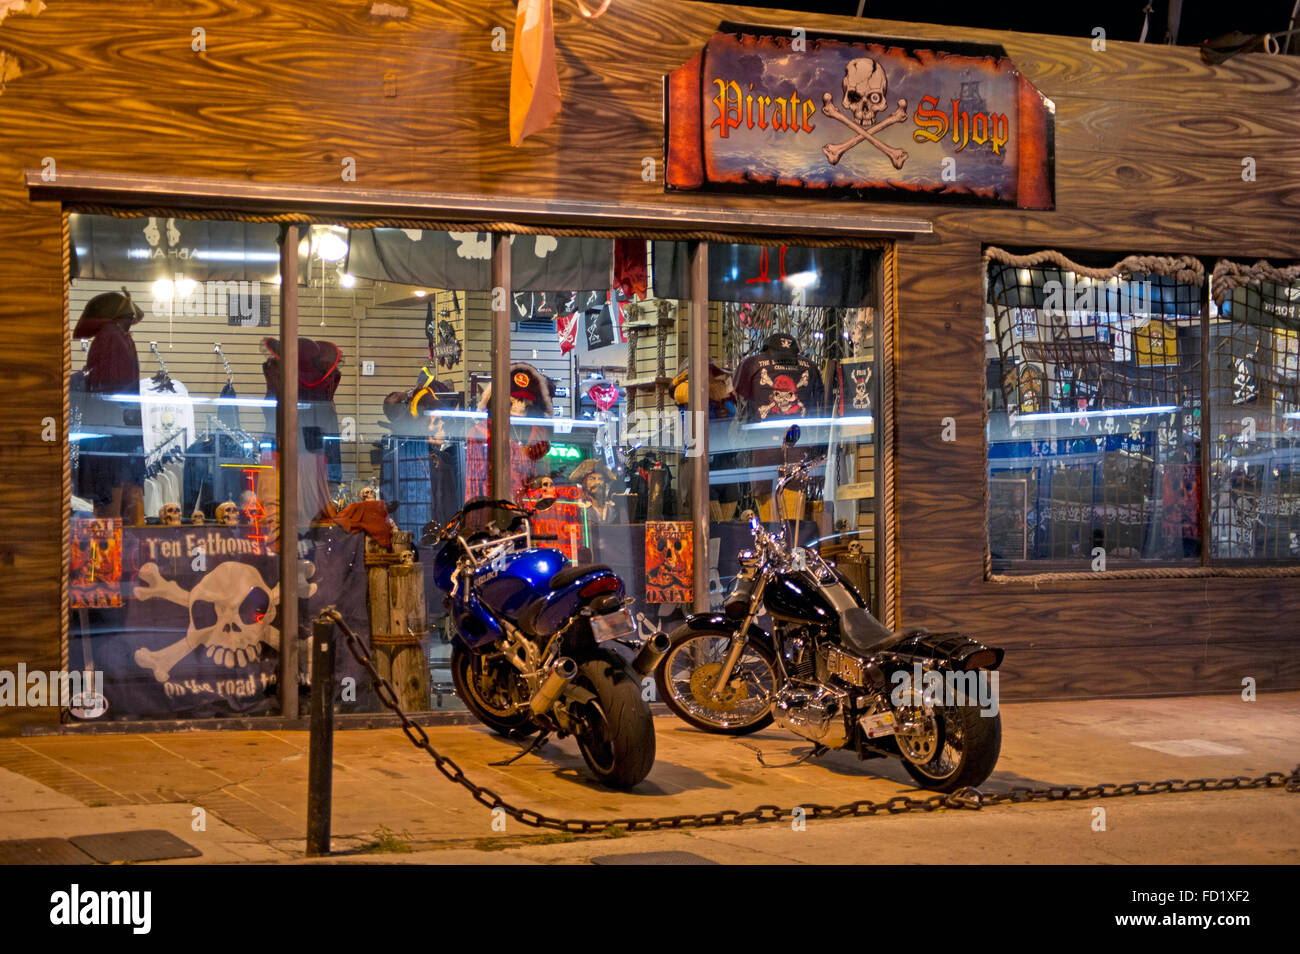 Motorbikes in front of Pirate Shop store in Fort Lauderdale, Florida